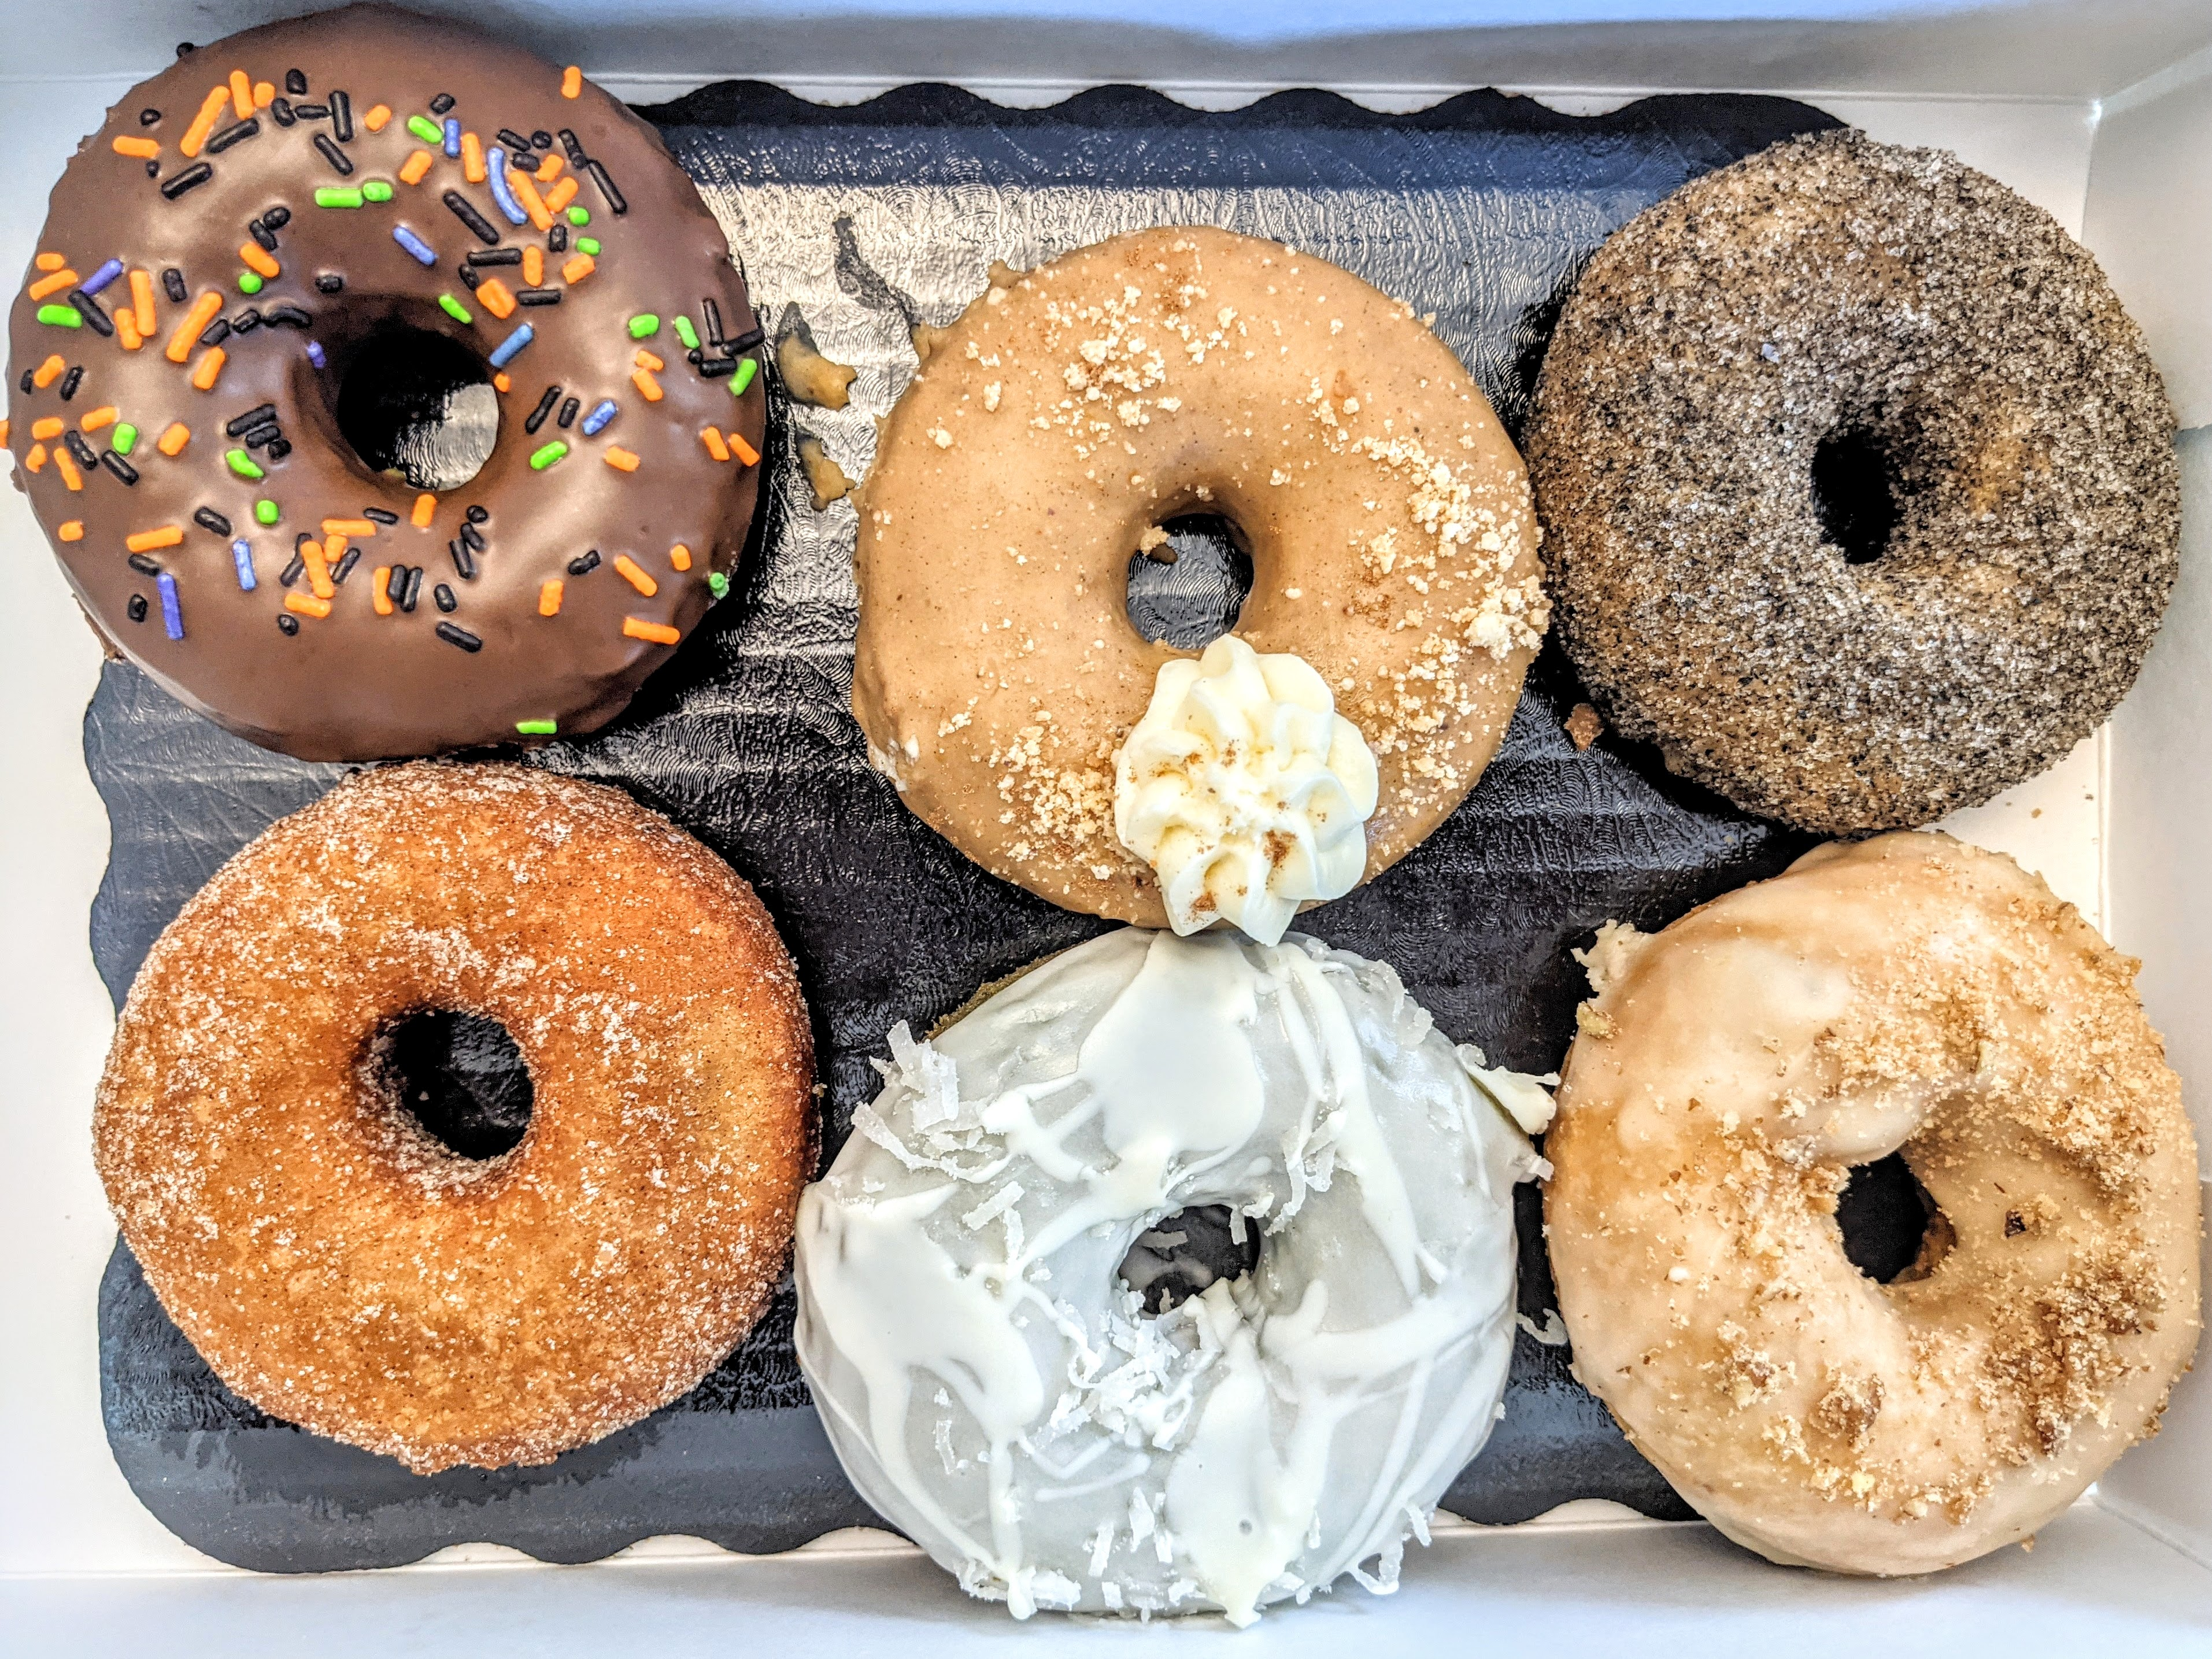 Overhead view of six doughnuts, all different flavors, in a white box.